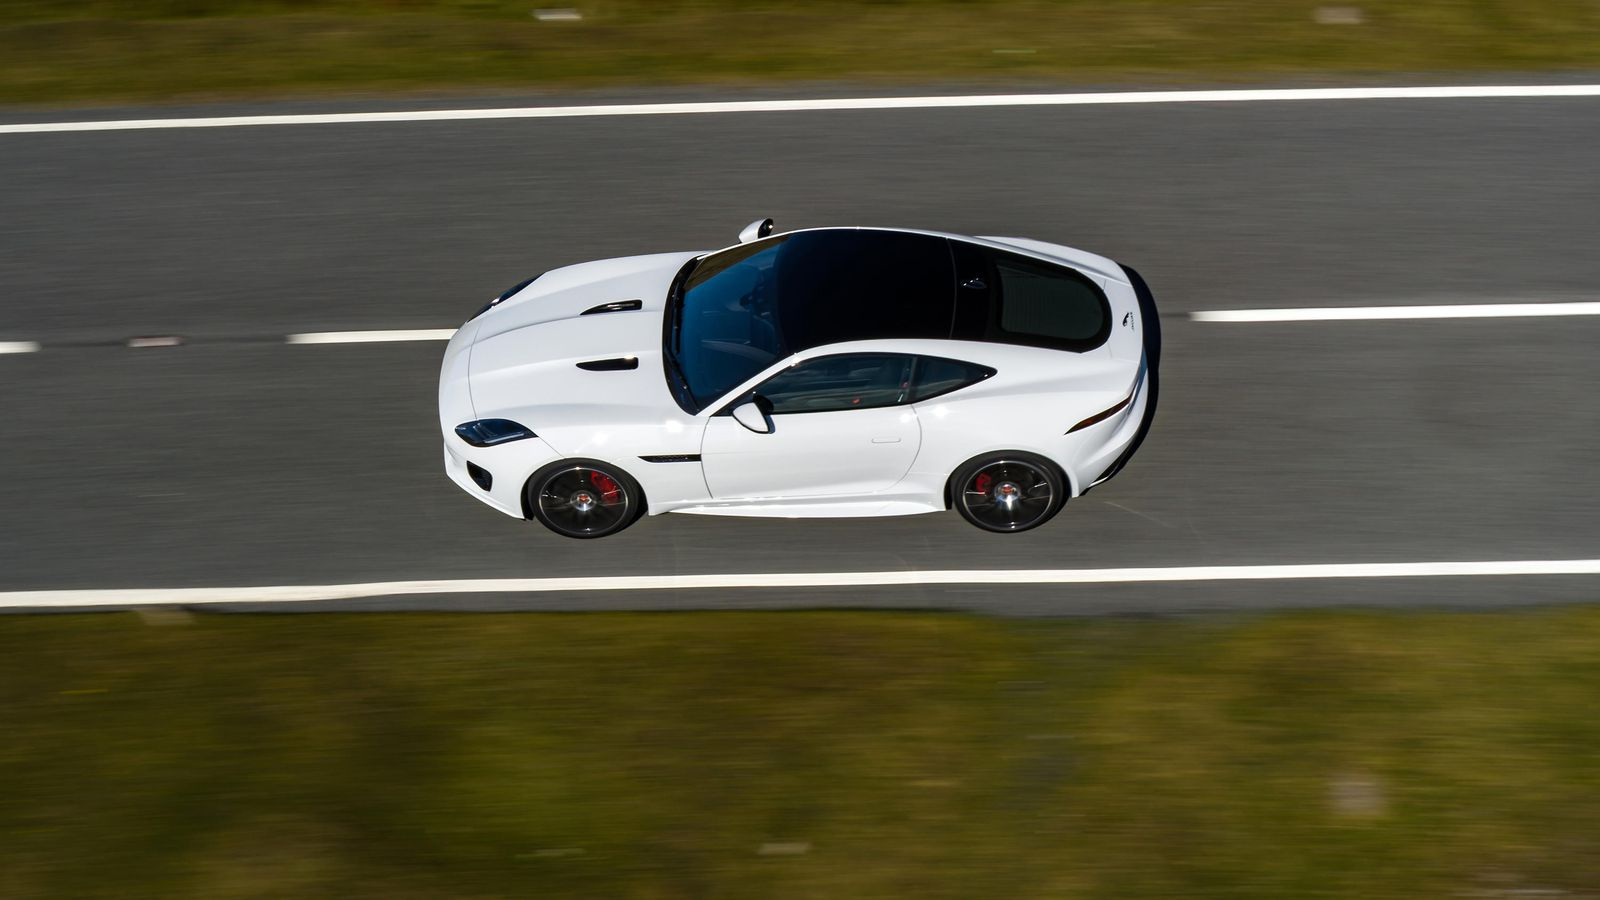 Jaguar spices up 2020 F-Type with Checkered Flag limited edition